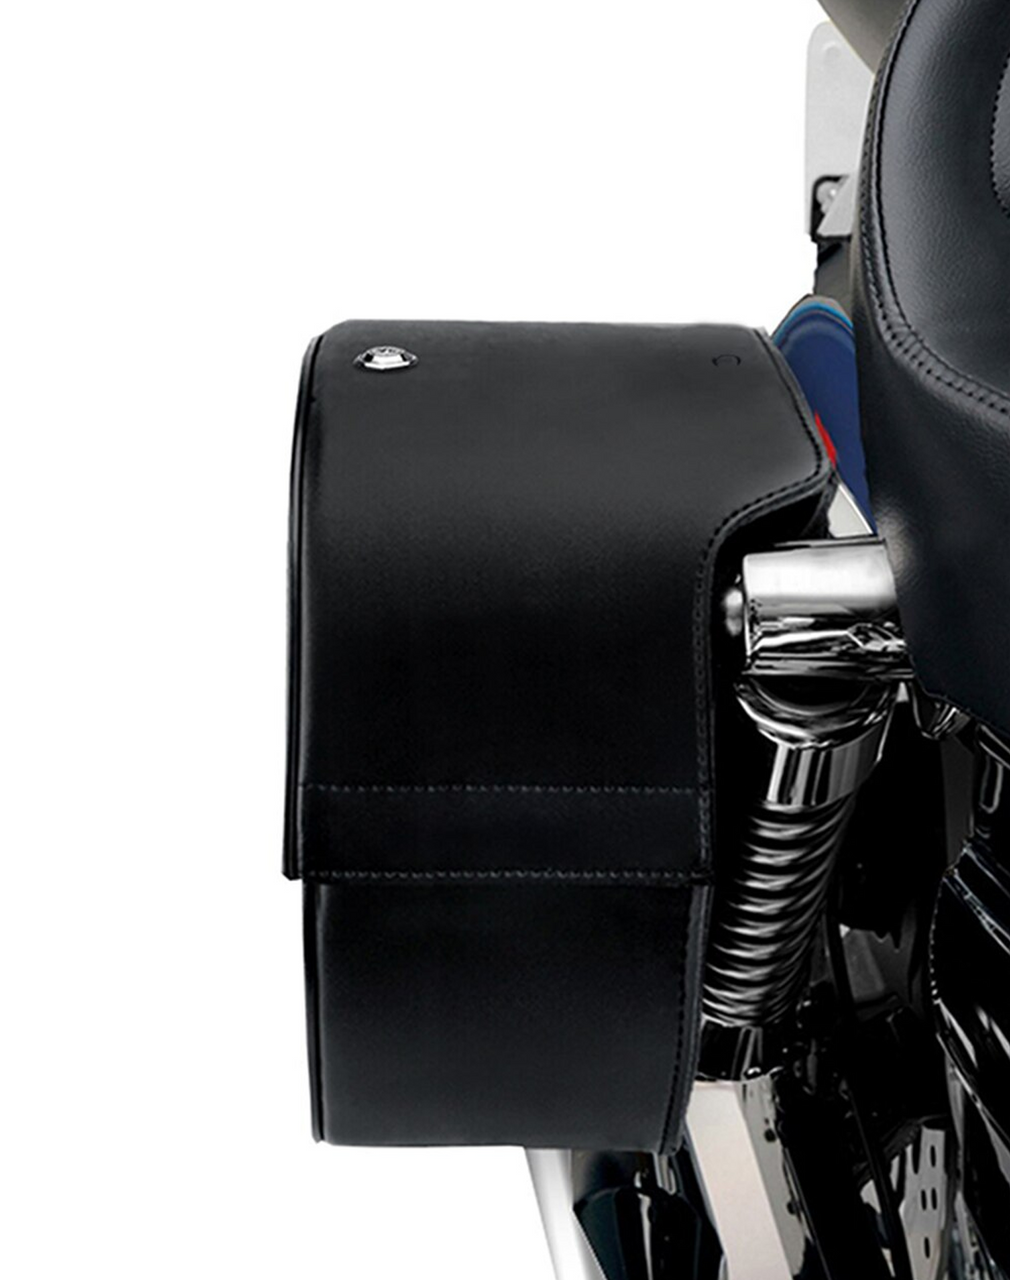 Honda Magna 750 Charger Side Pocket With Shock Cutout Motorcycle Saddlebags shock cutout view